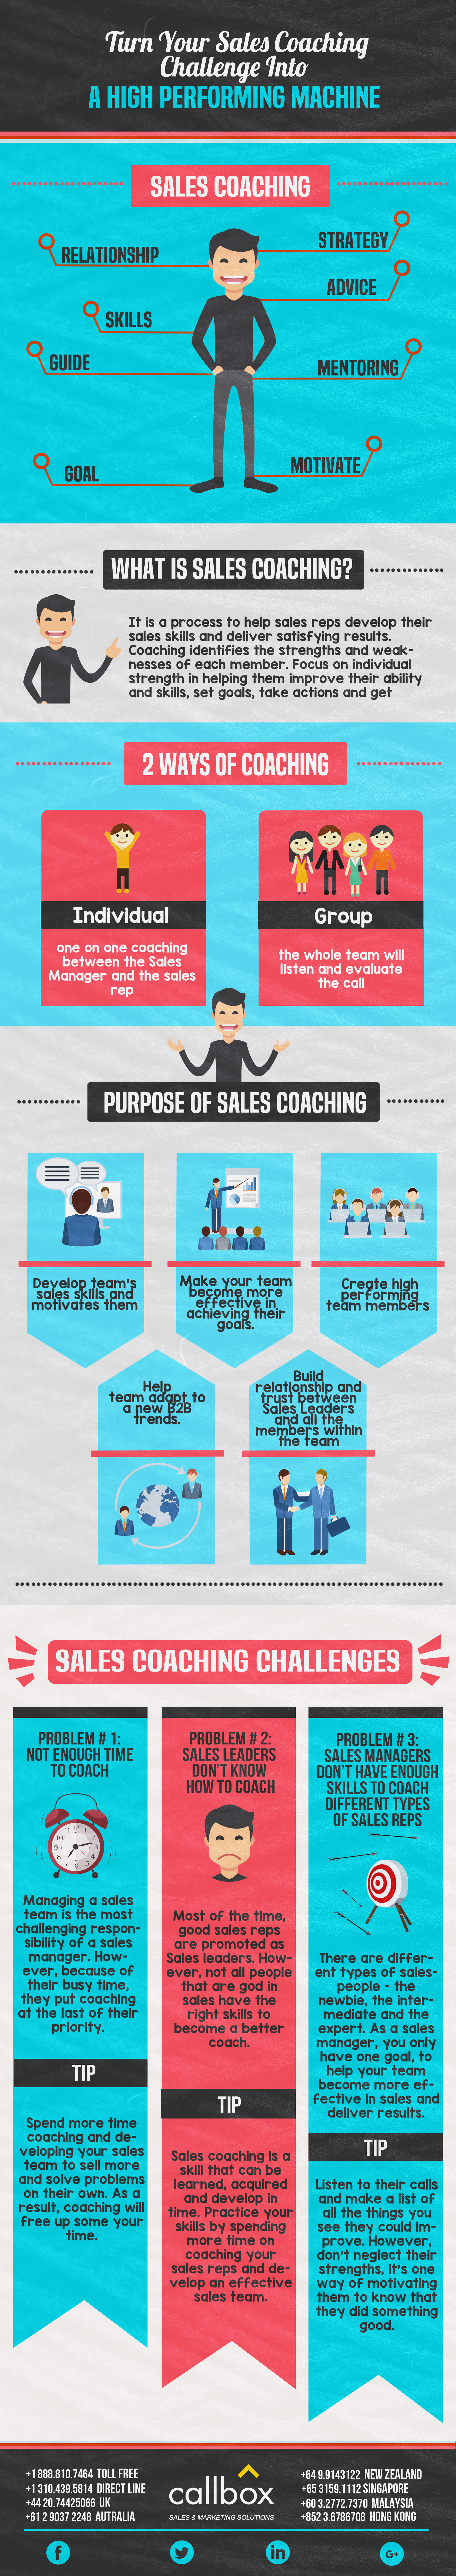 Turn Your Sales Coaching Challenge into a High Performing Machine